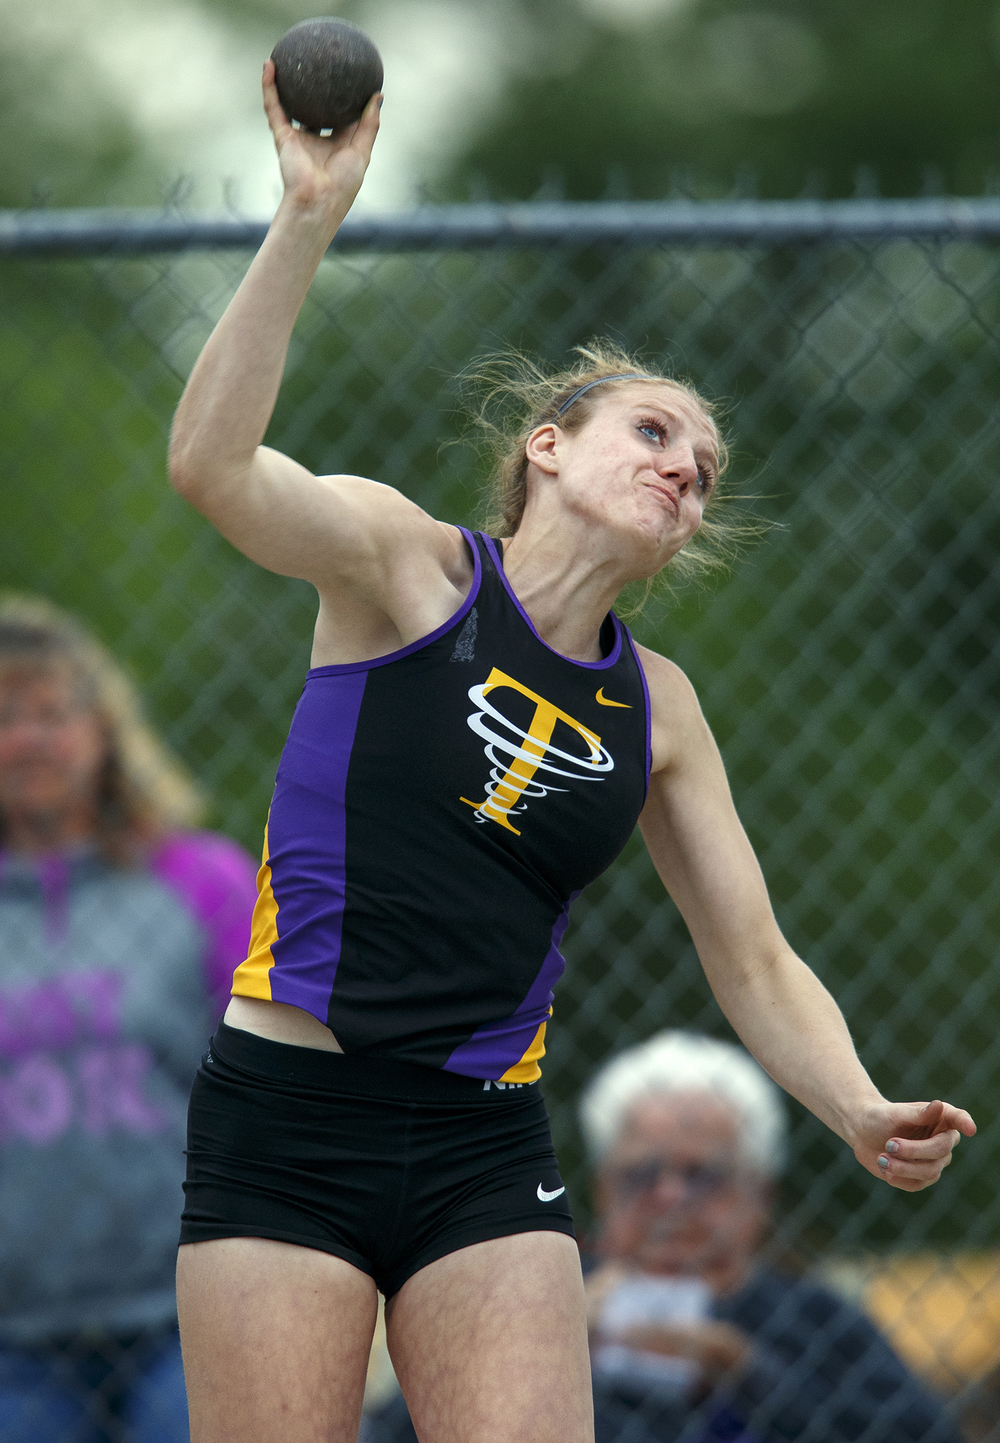 Taylorville's Natalie Snyder won the shot put during the Class 2A girls sectional track meet at Rochester High School Friday, May 13, 2016. Ted Schurter/The State Journal-Register